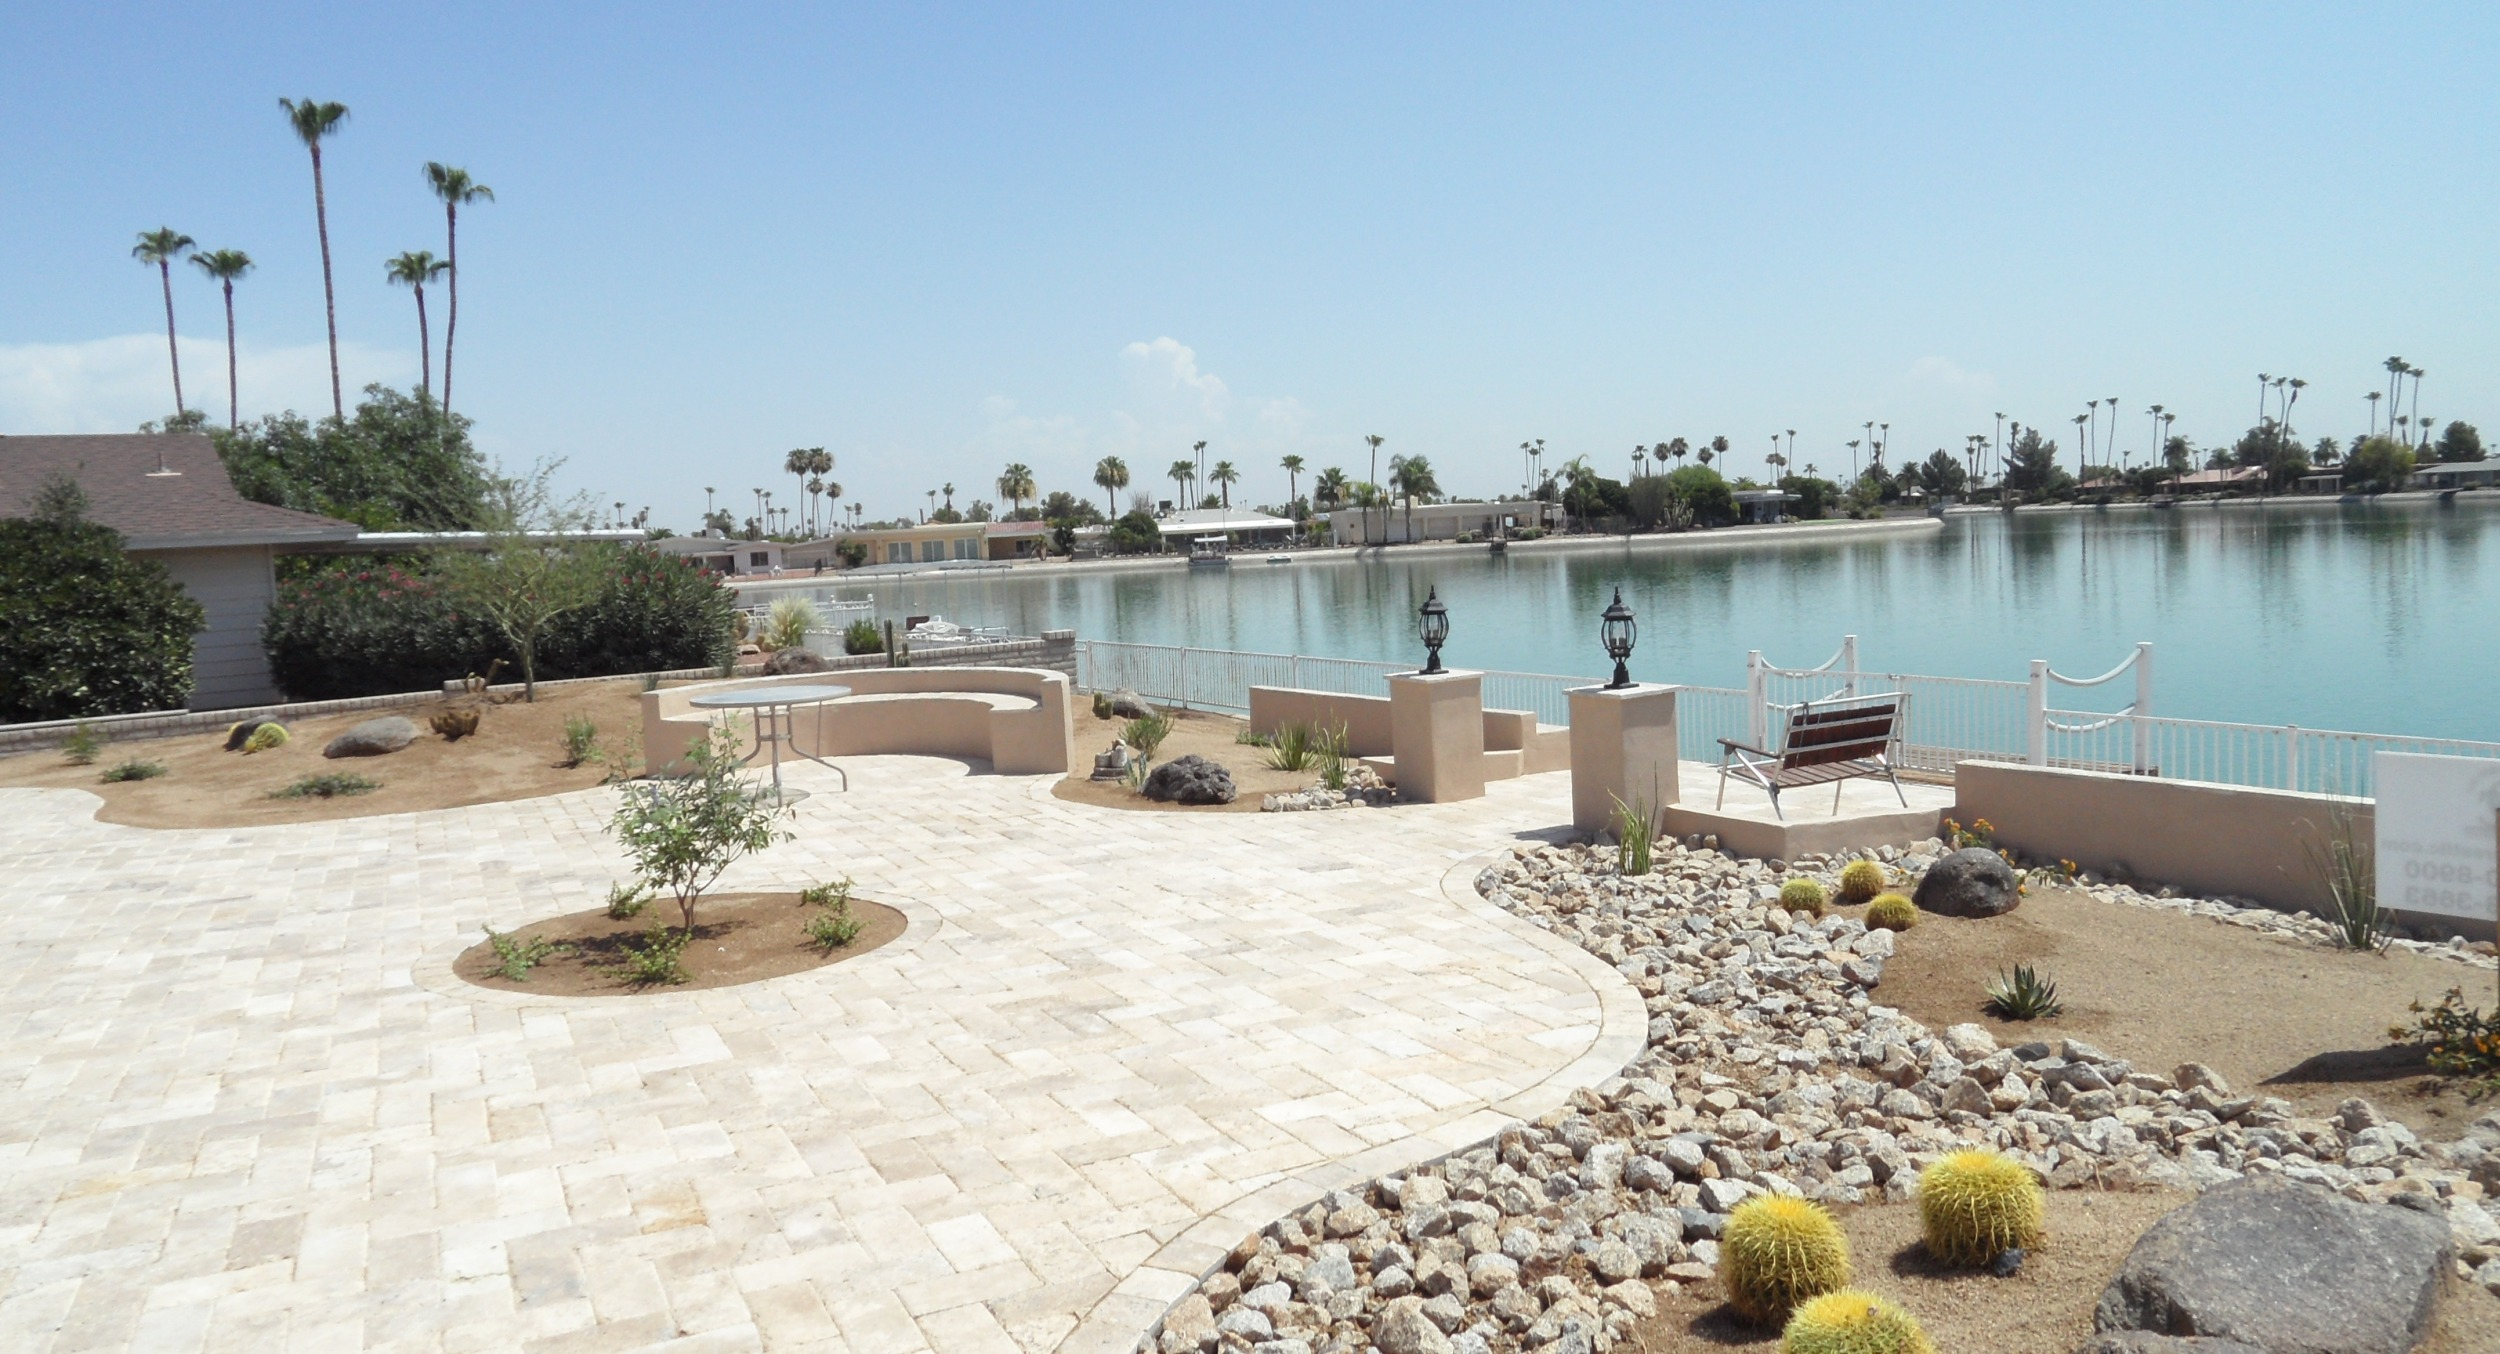 Waterfront living means having lots of space for outdoor entertaining, especially in the desert. These homeowners have plenty of room now with their light travertine patio design. Sun City landscaping is low-maintenance to allow them a nice yard that doesn't take up their time.